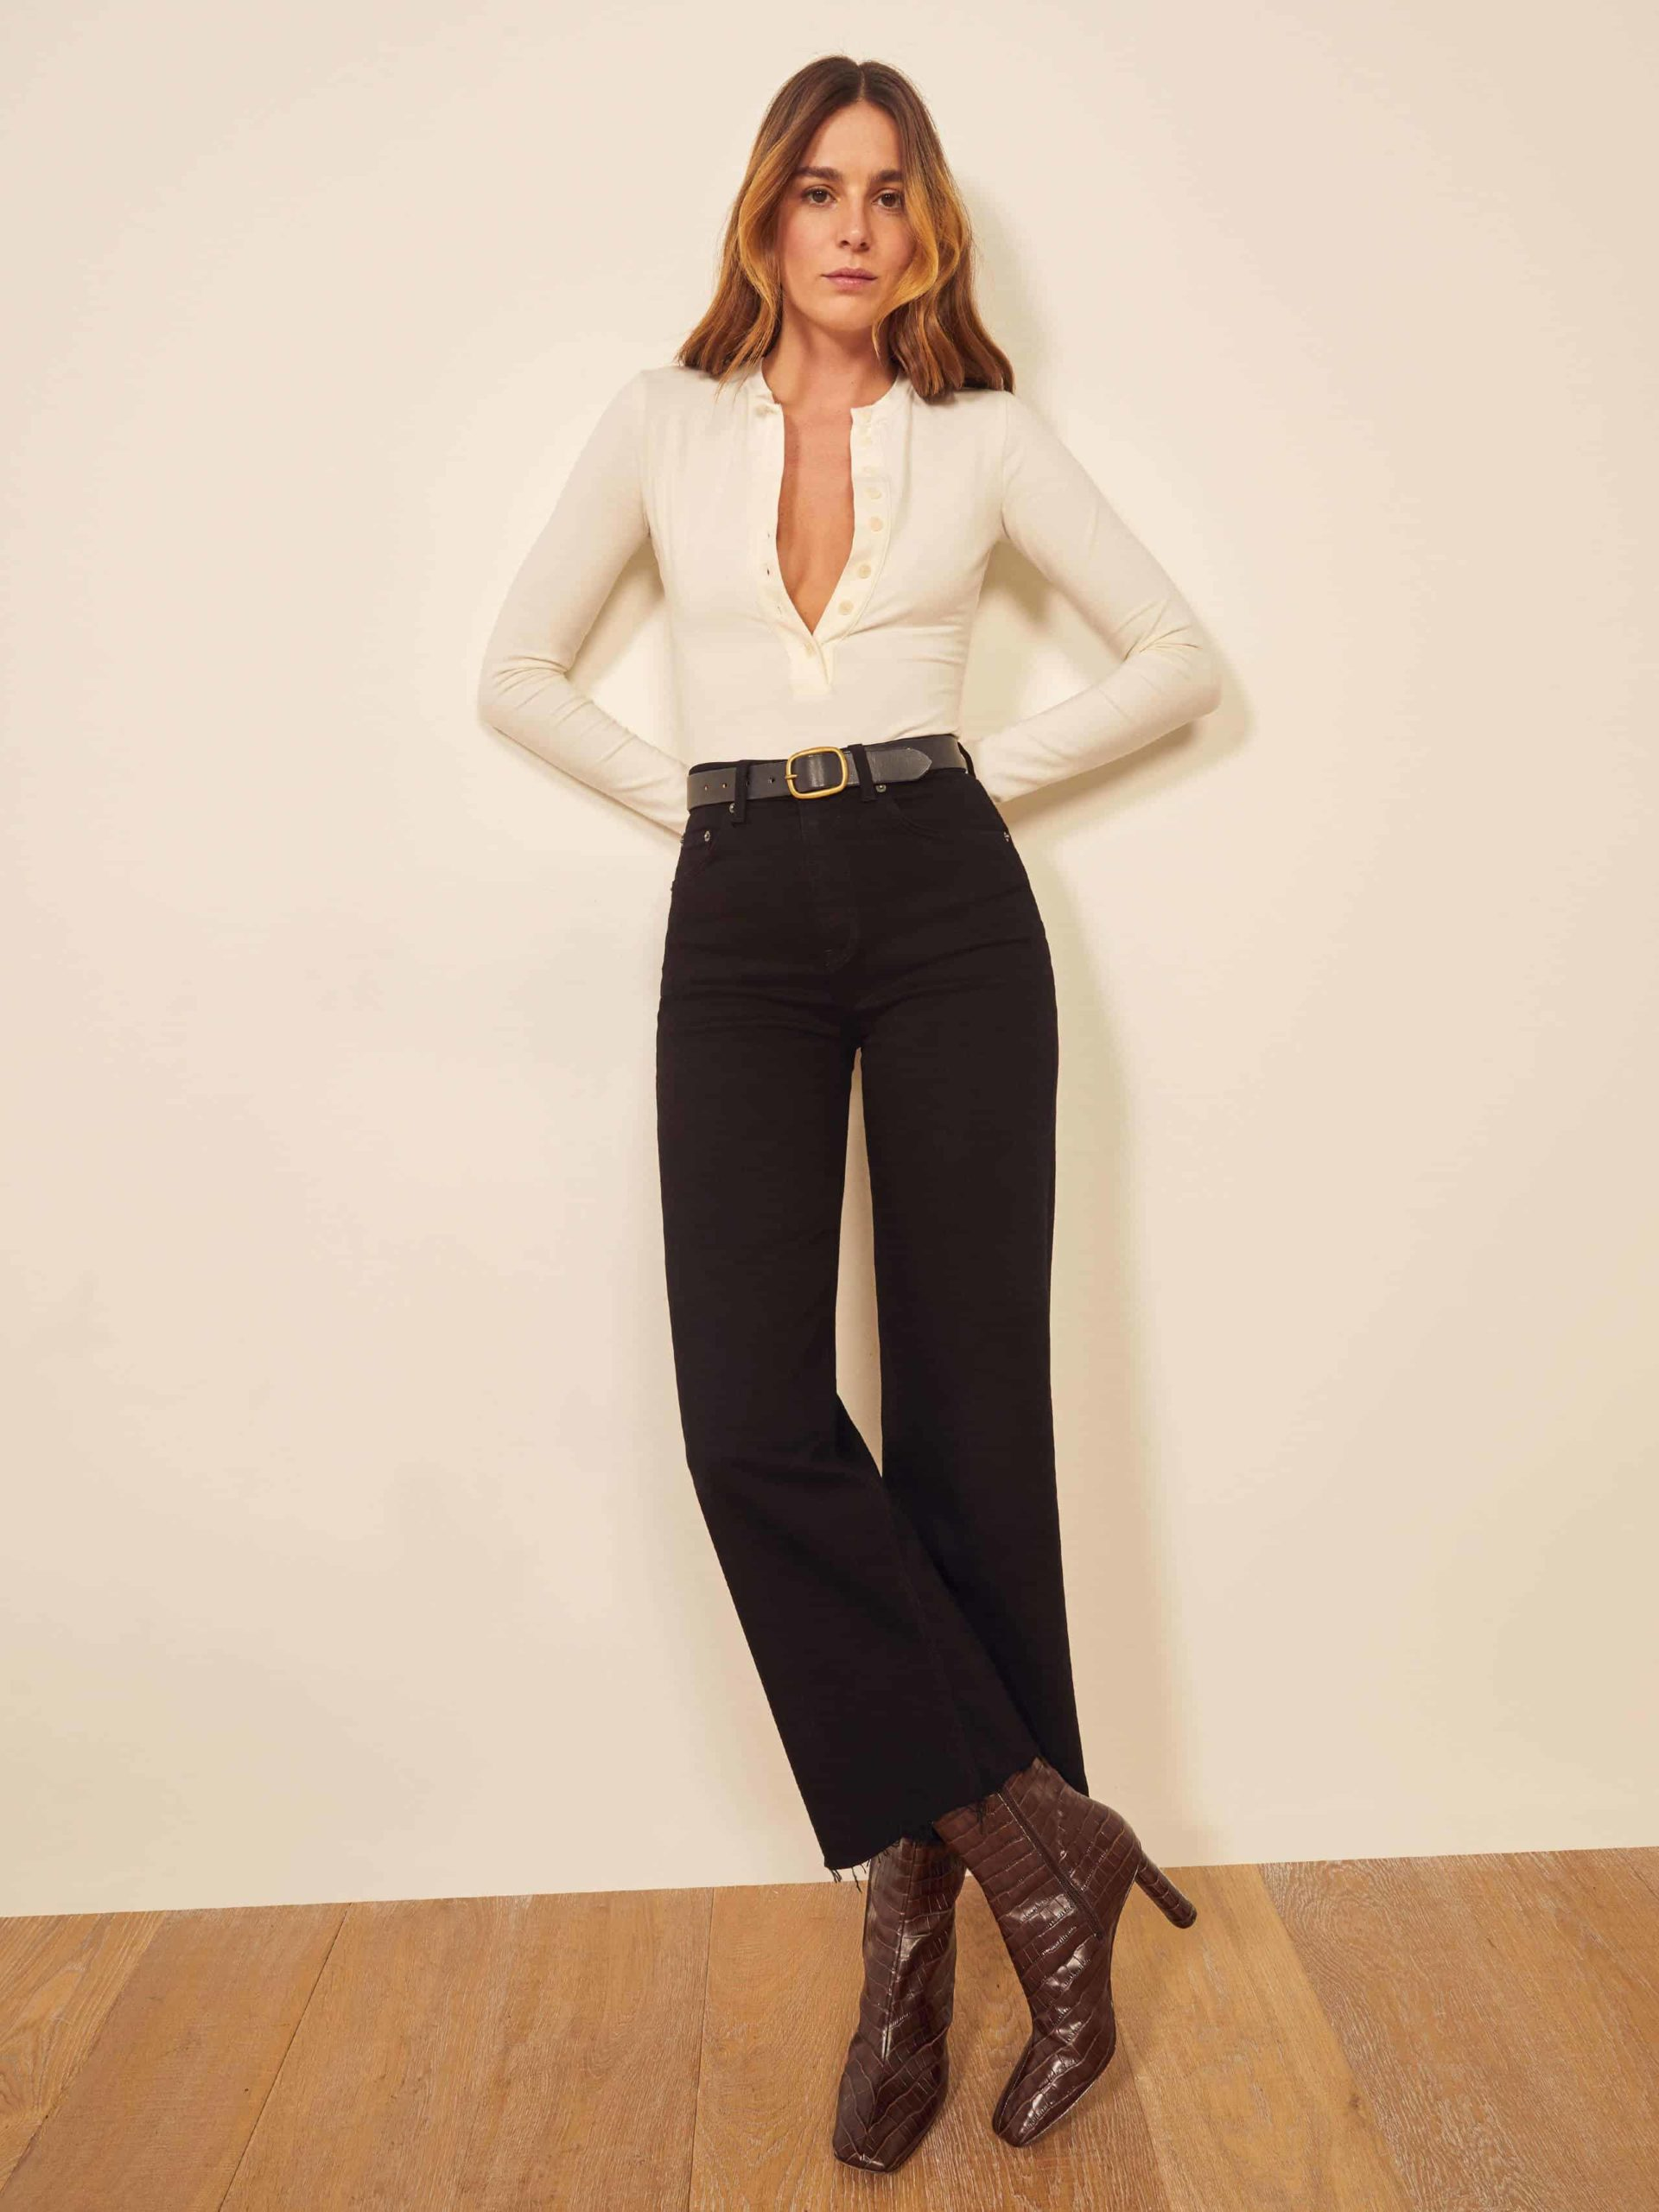 Ethical Fall Fashion Collections